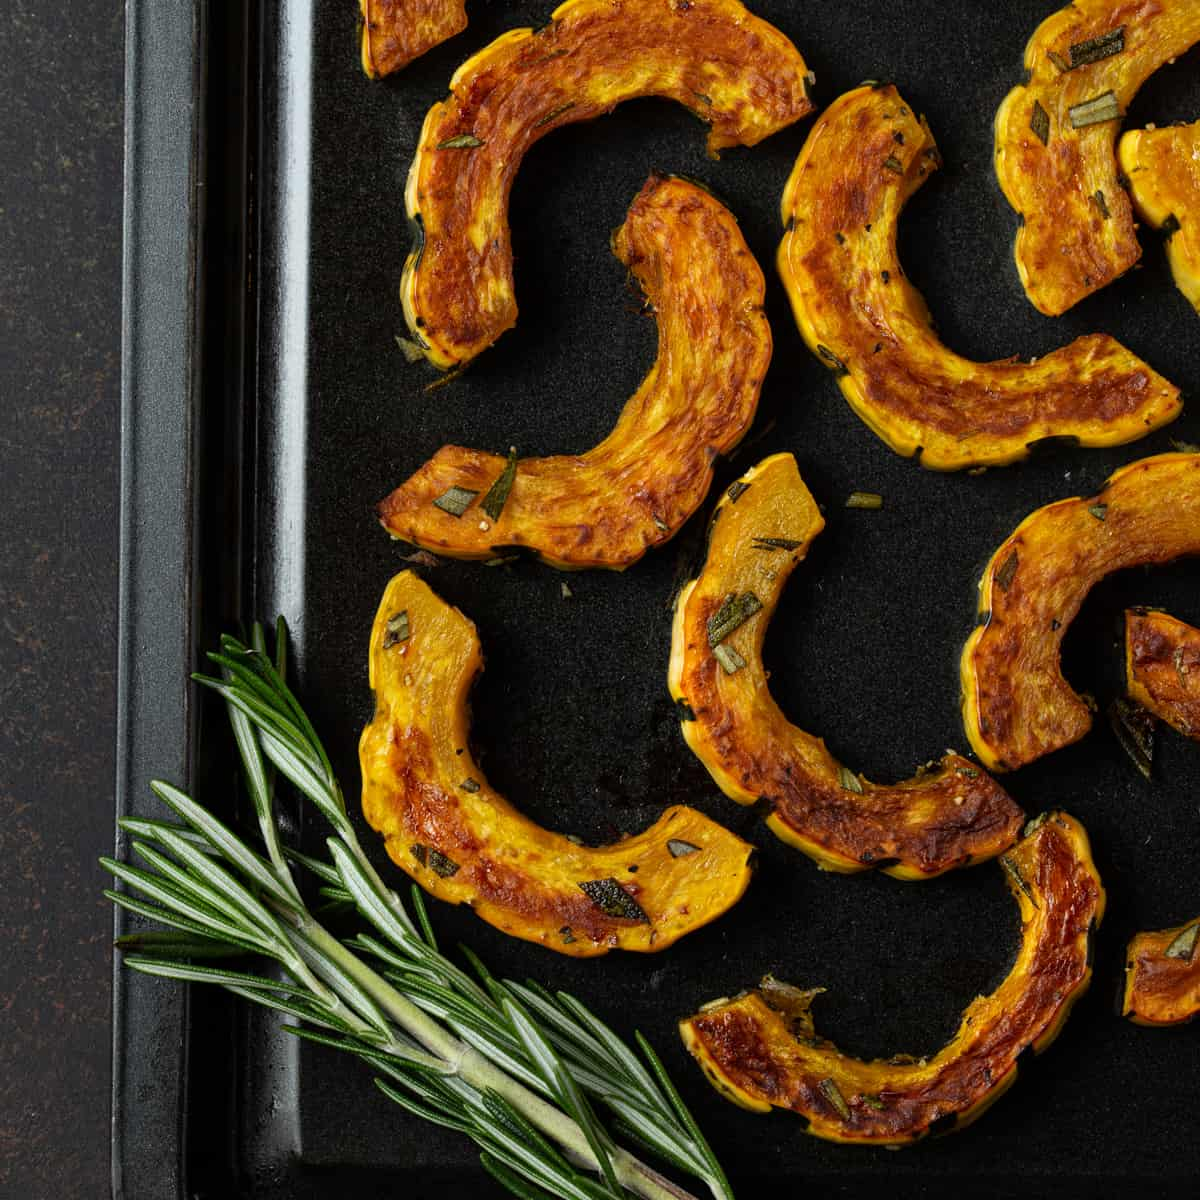 sliced squash on sheet pa, with rosemary.